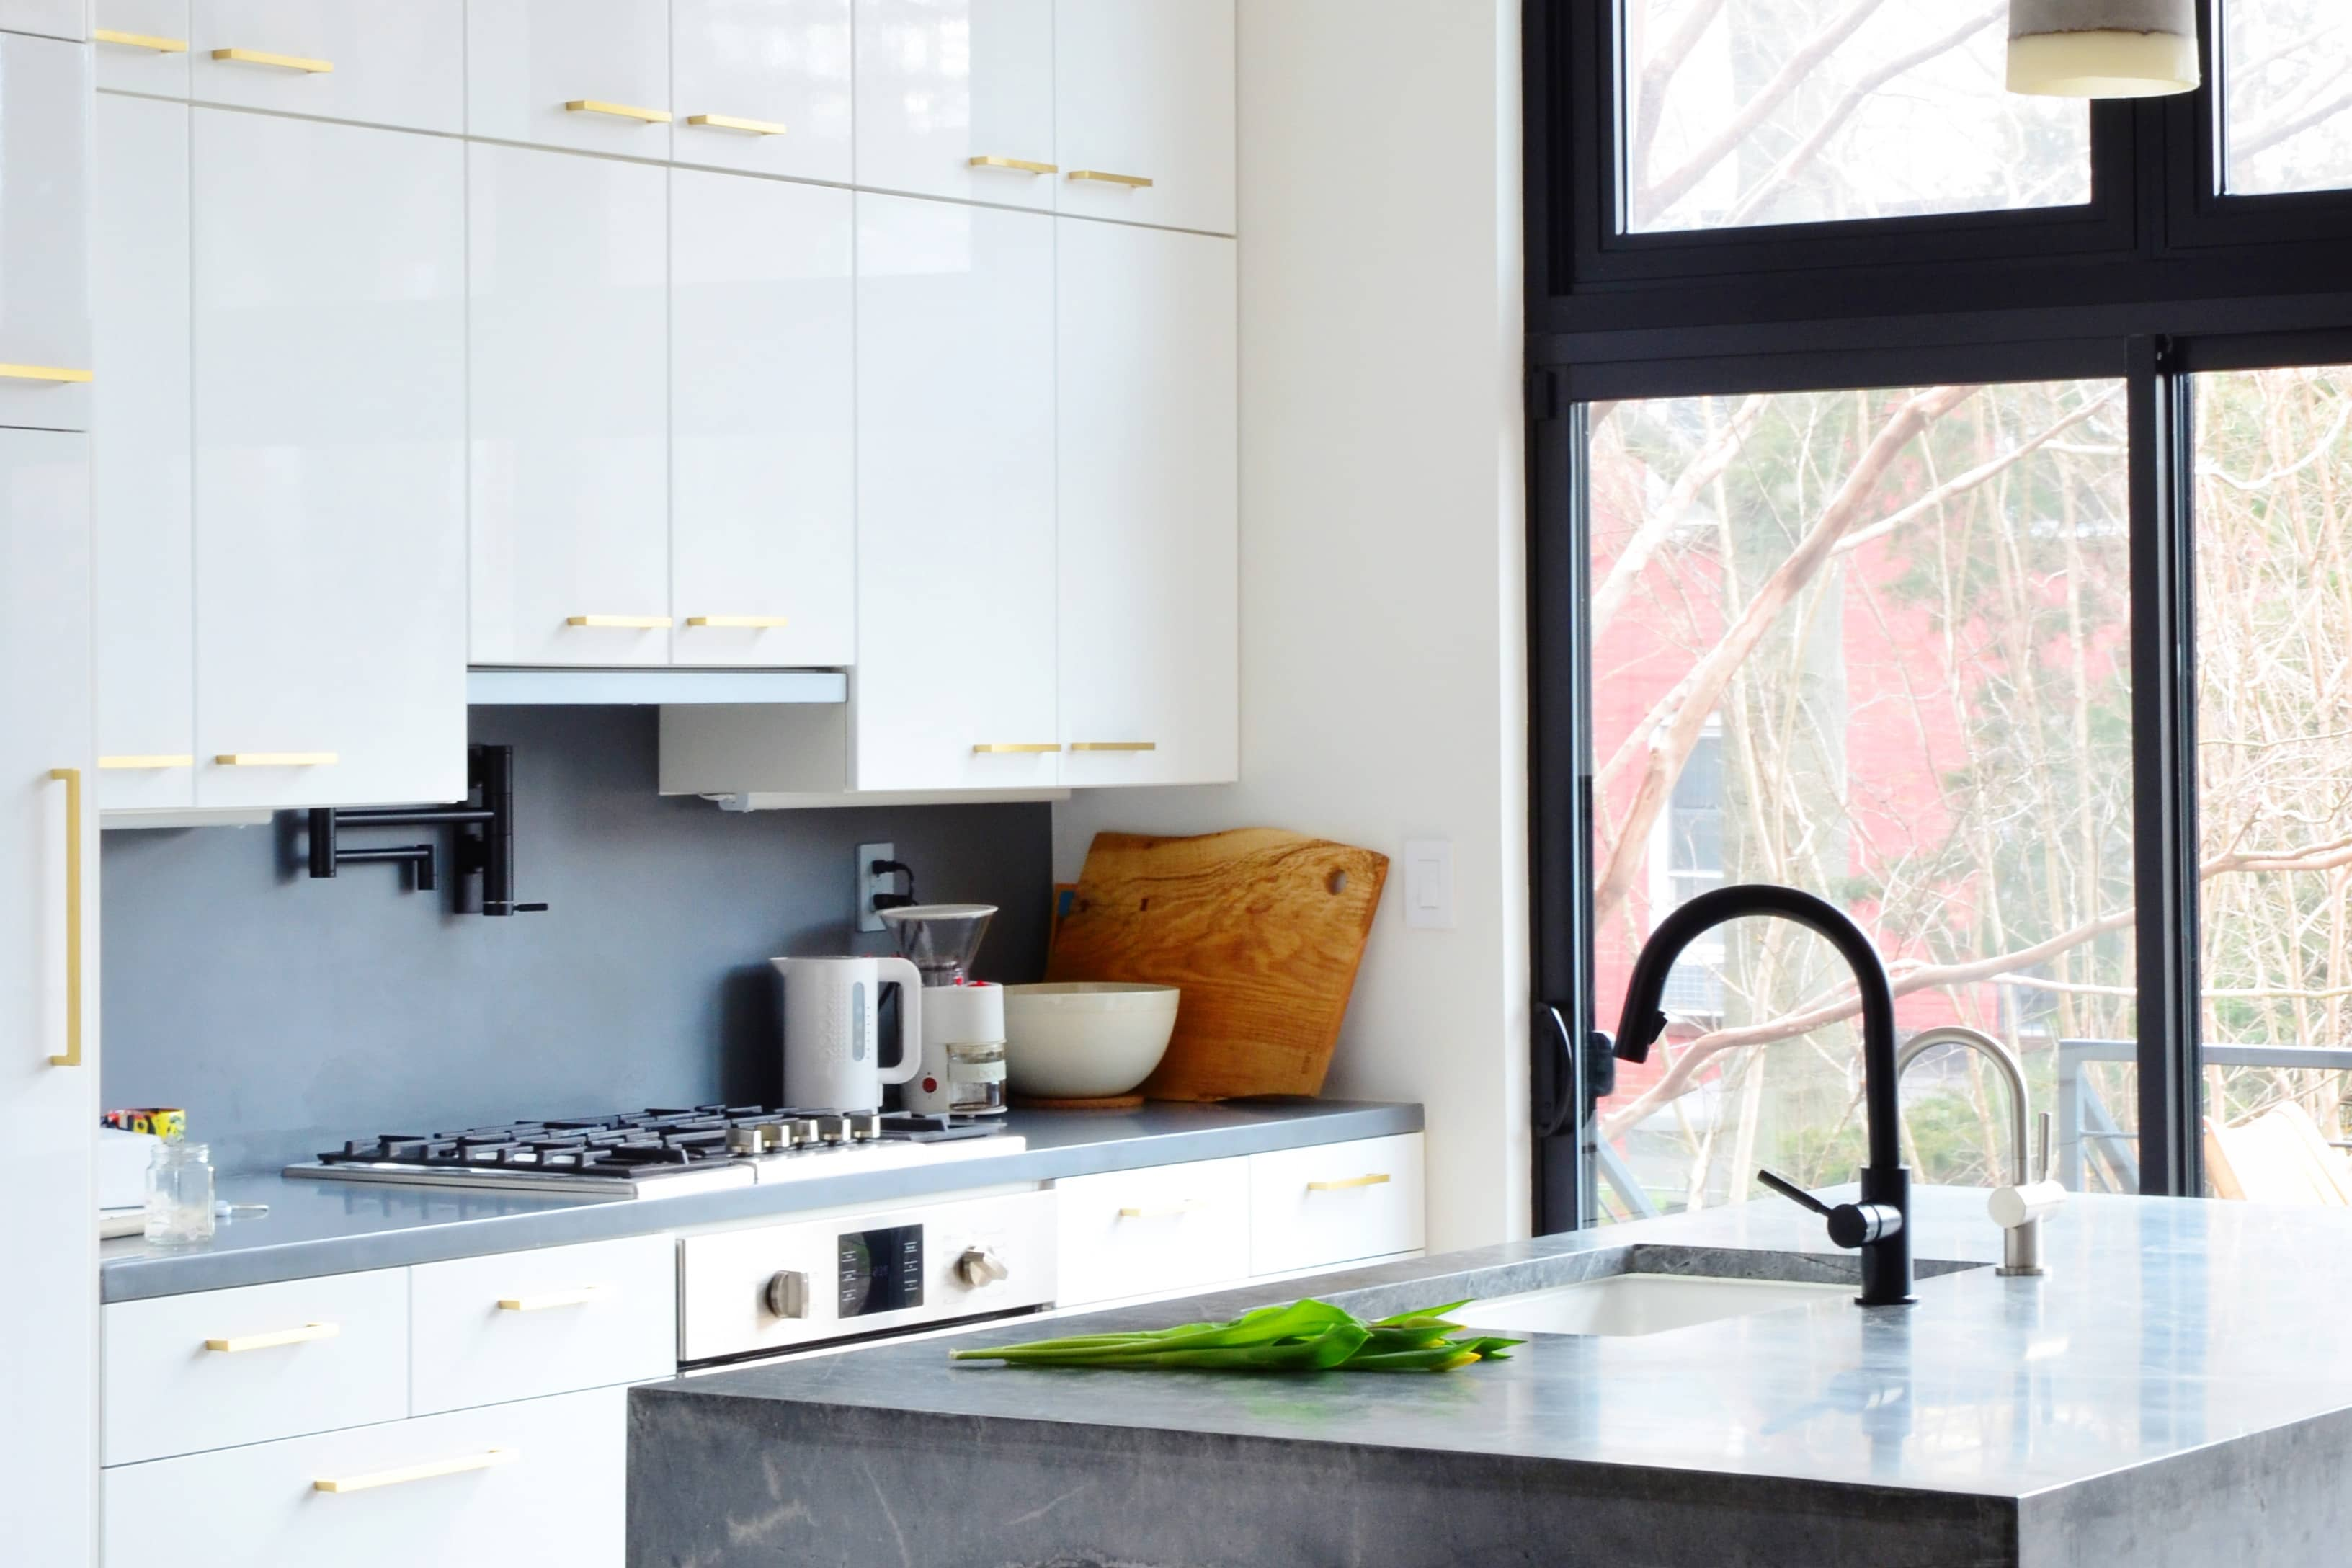 IKEA Kitchen Cabinets: Pro Design Tips for Custom Look ...